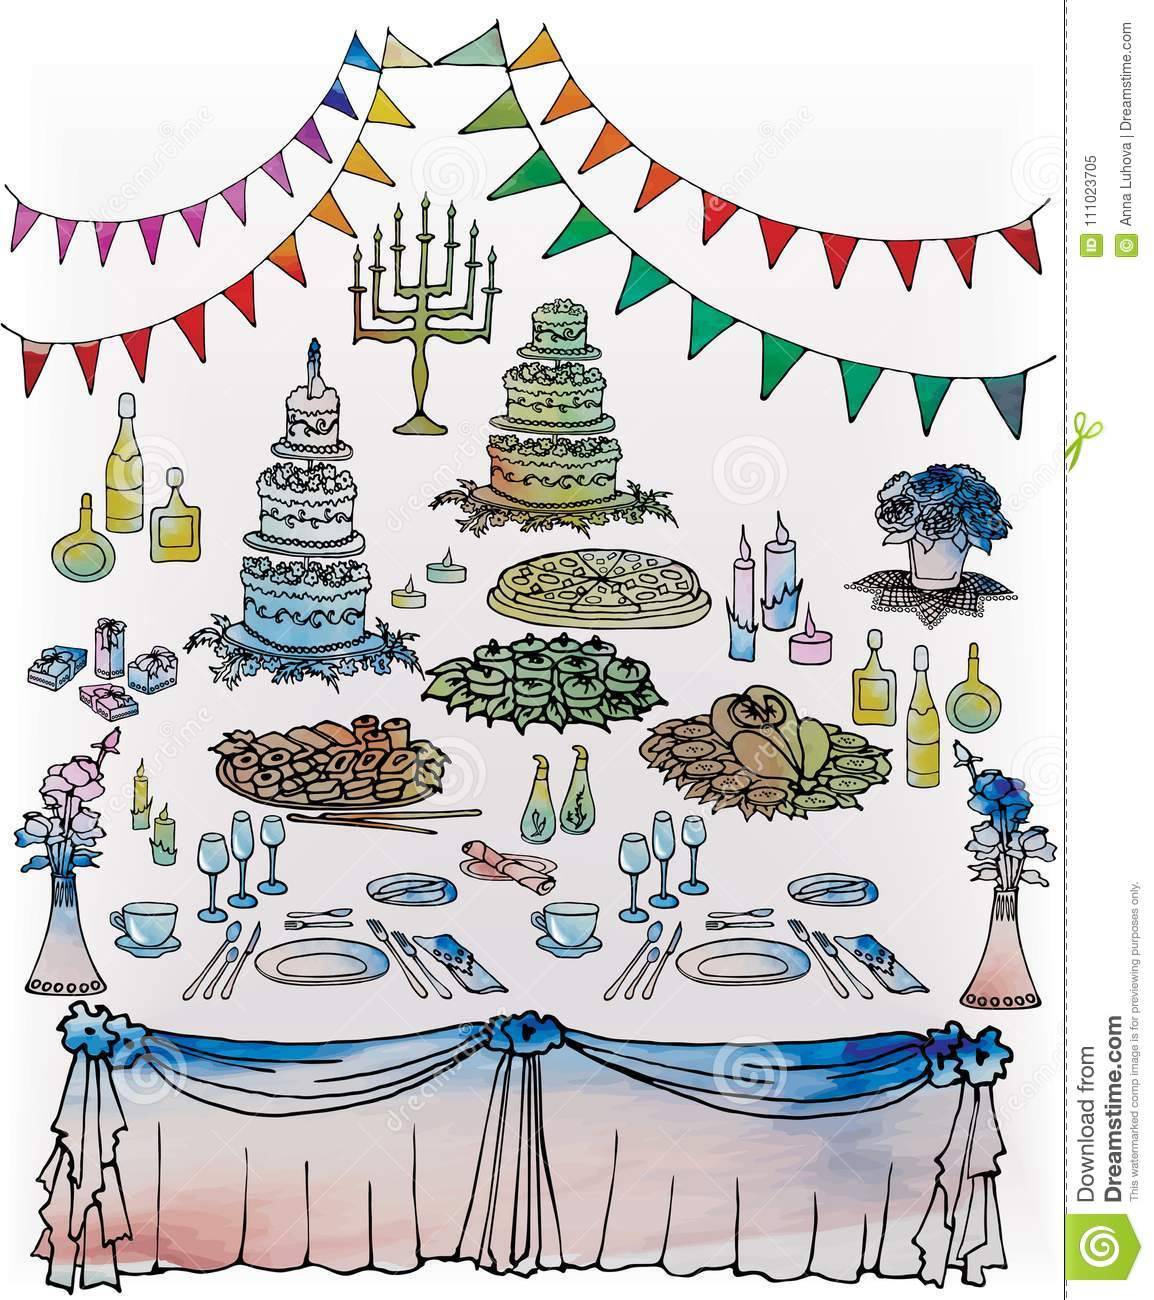 Jewish Wedding Food: Wedding Decorated Table Menorah Gifts And Flowers Stock